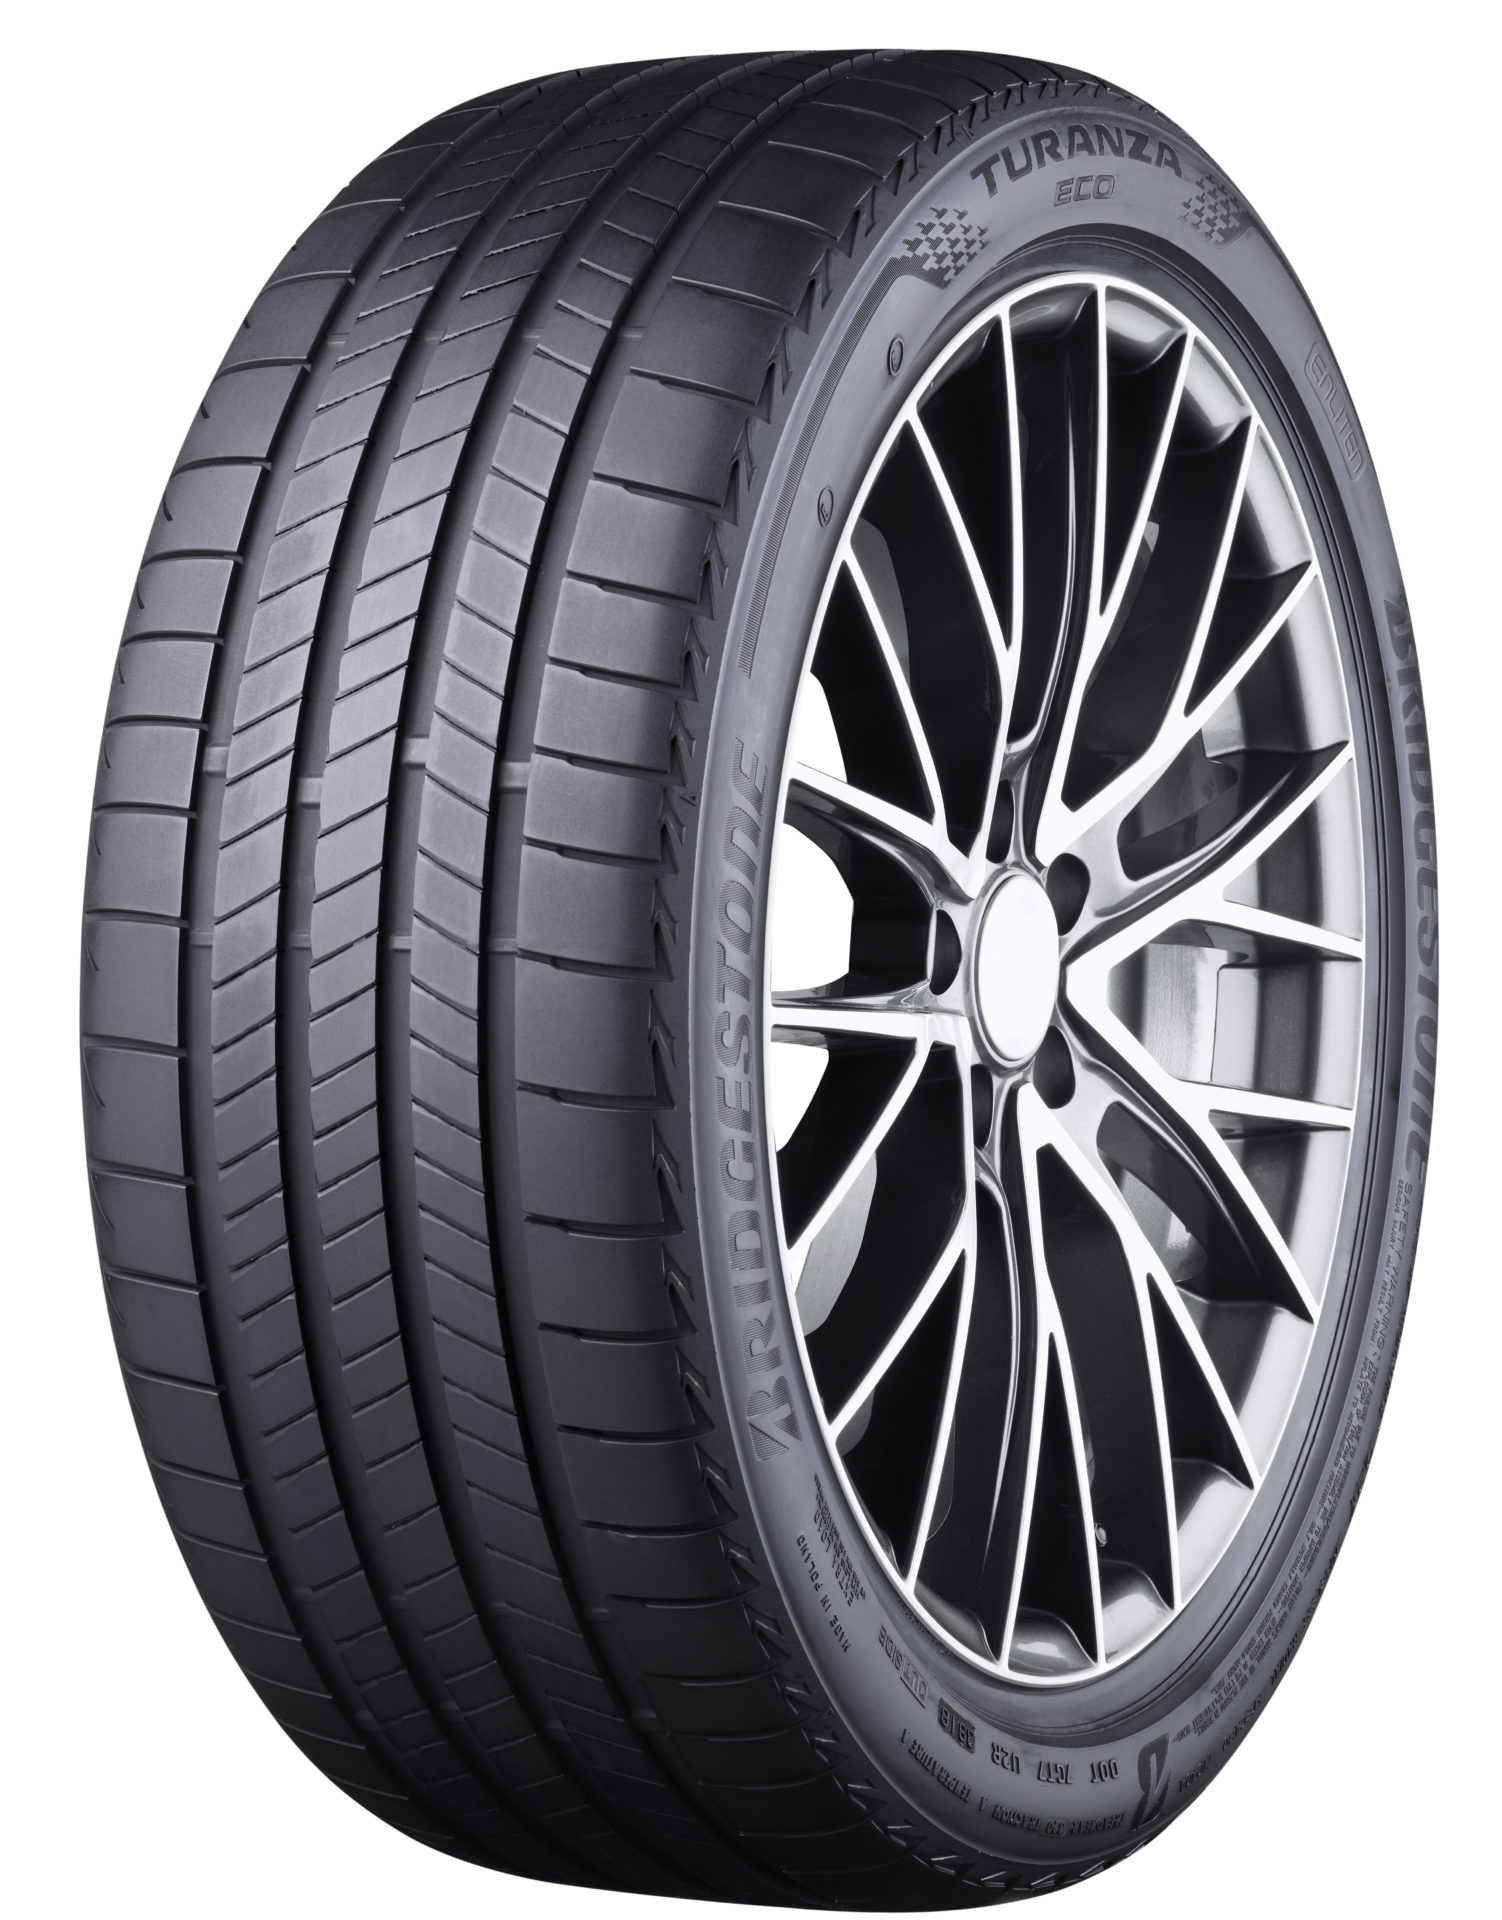 Bridgestone Enliten